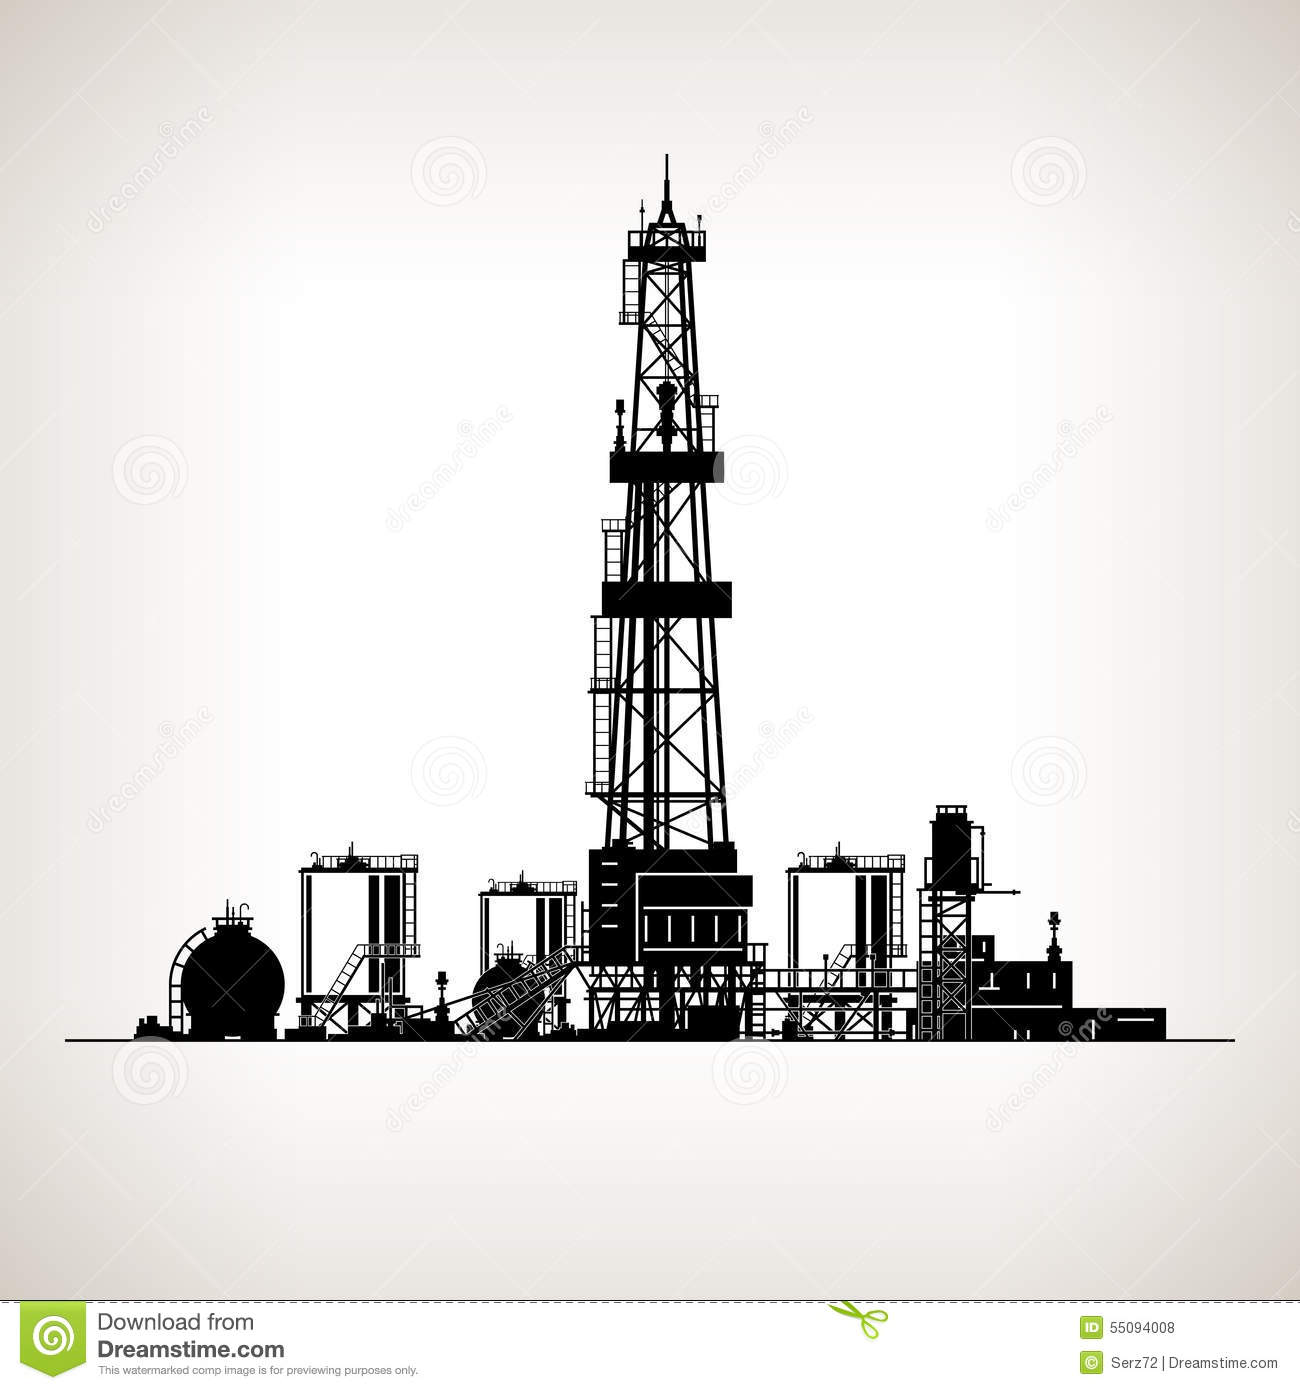 Silhouette Drilling Rig stock vector. Illustration of pipe ...  Silhouette Dril...